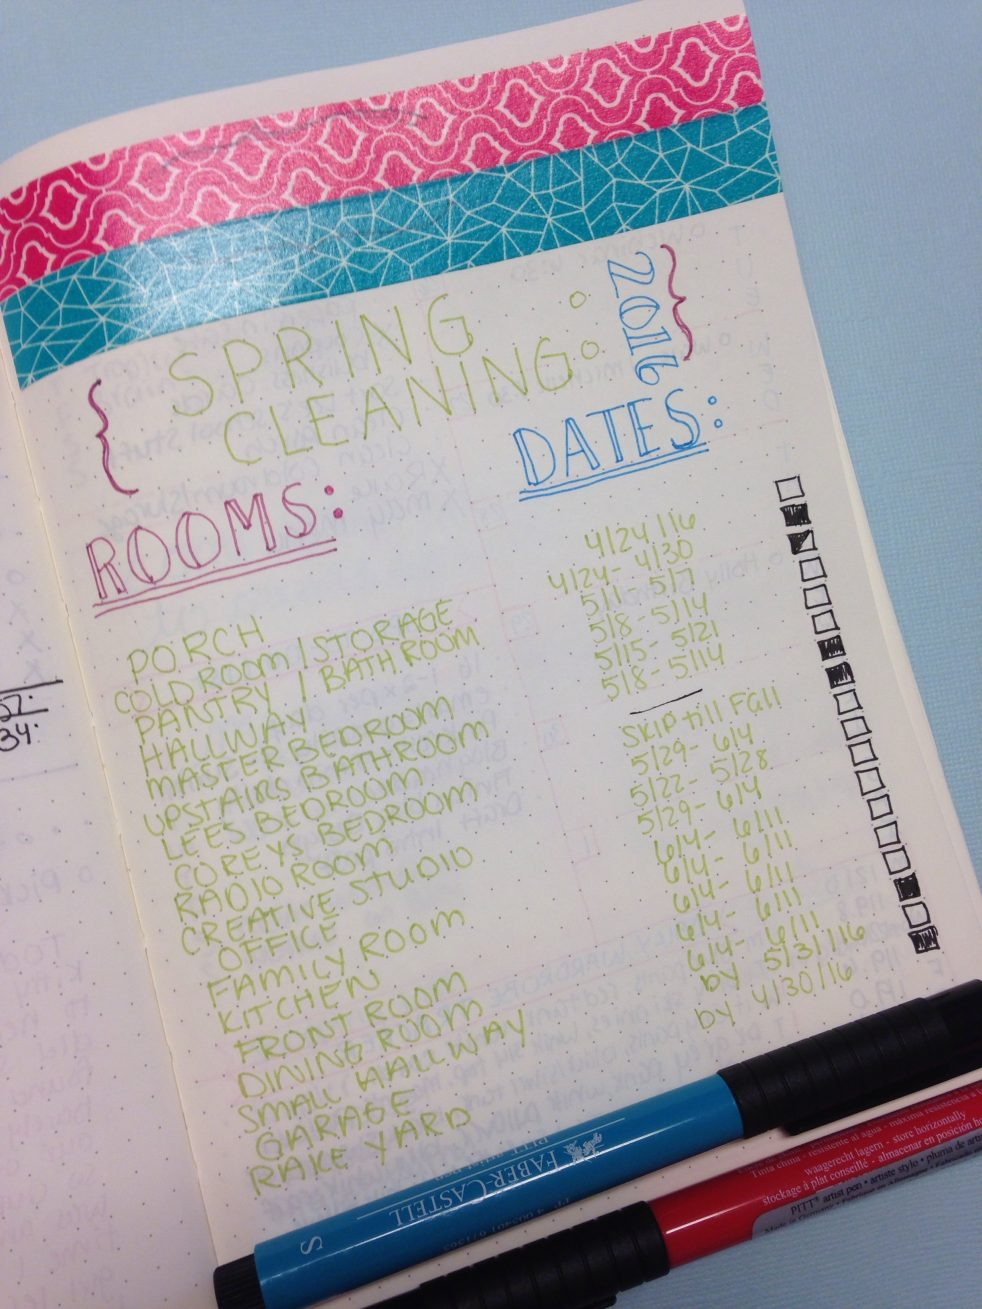 Spring Cleaning: Organizing a Schedule